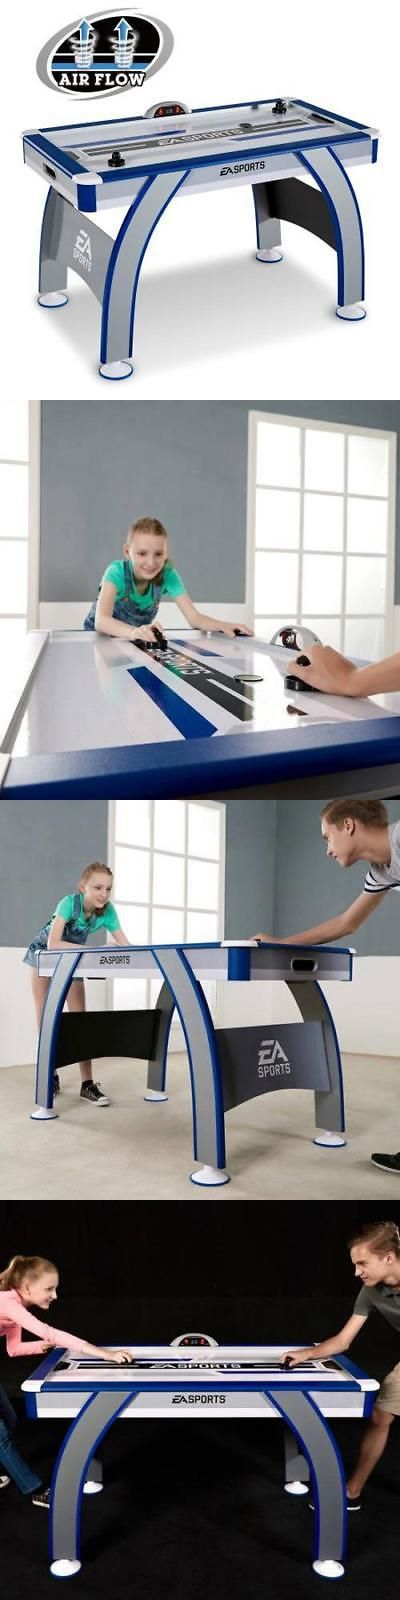 Air Hockey 36275: Ea Sports 54 Inch Air Powered Hockey Table With Led  Electronic Scorer